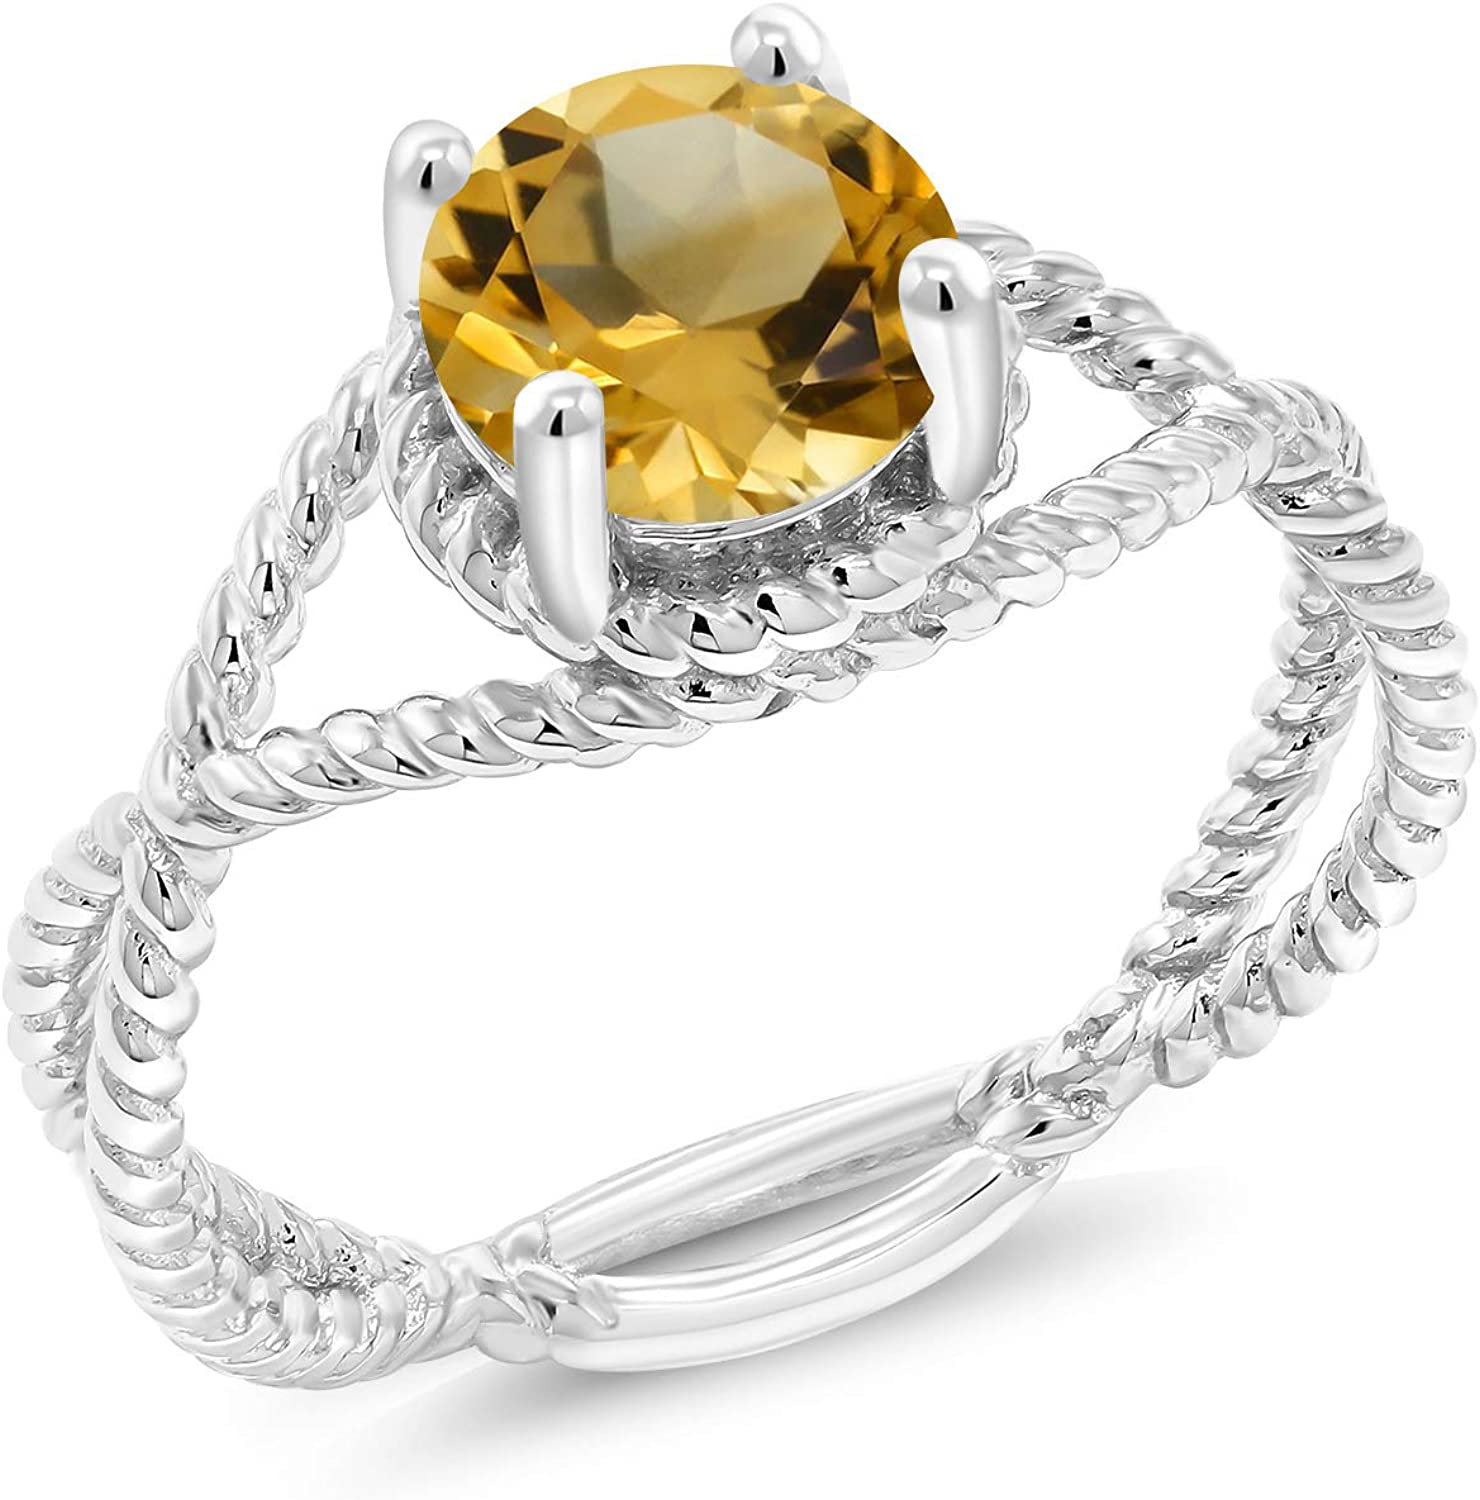 Gem Stone King Yellow Citrine and White Created Sapphire 925 Sterling Silver Womens Engagement Ring 3.10 Ct Cushion Cut, Gemstone Birthstone Available in size 5, 6, 7, 8, 9